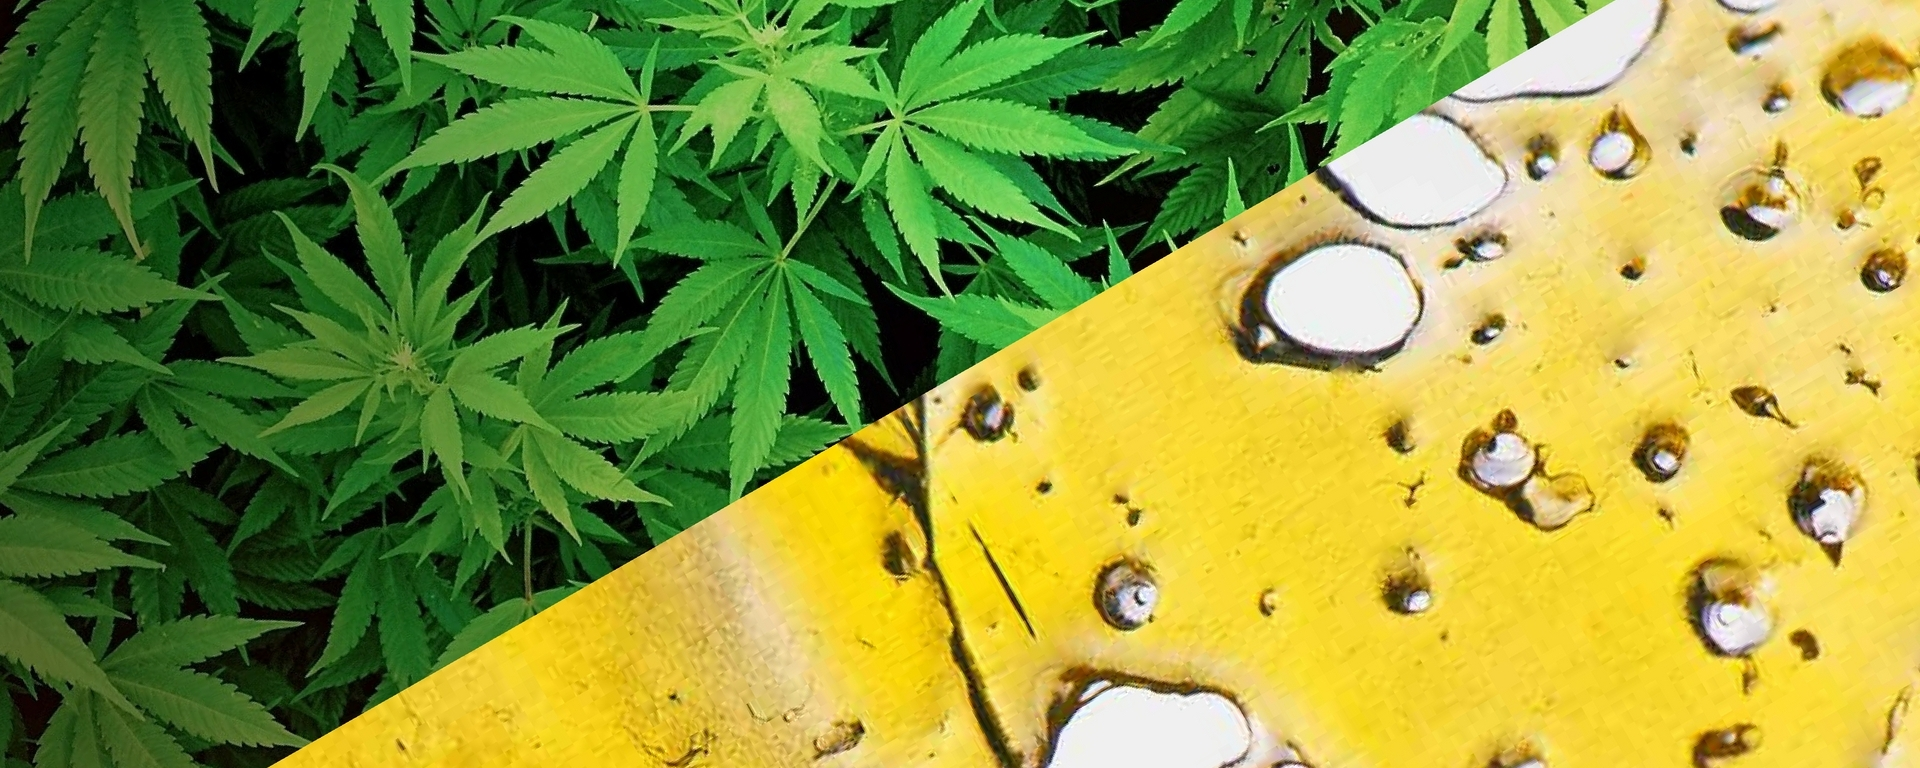 Ask a Cannababe: Flower vs Concentrates - HeyHelloHigh